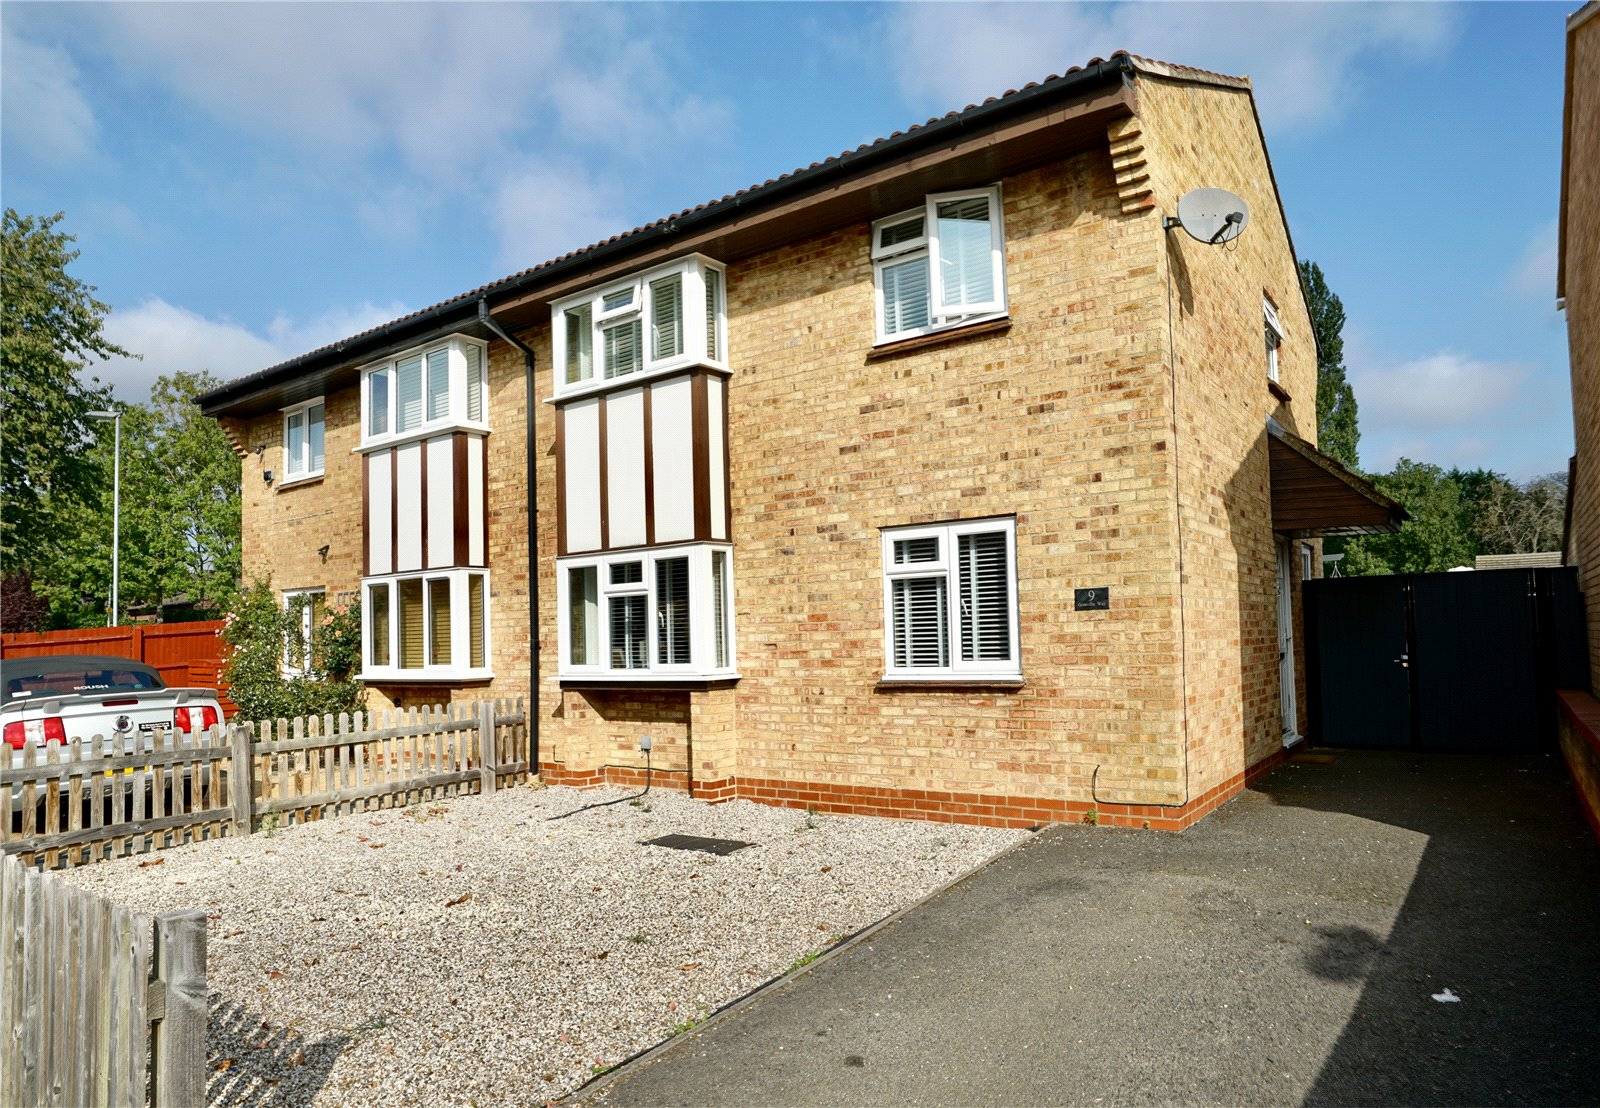 3 bed house for sale in Eaton Socon, Grenville Way, PE19 8HZ, PE19